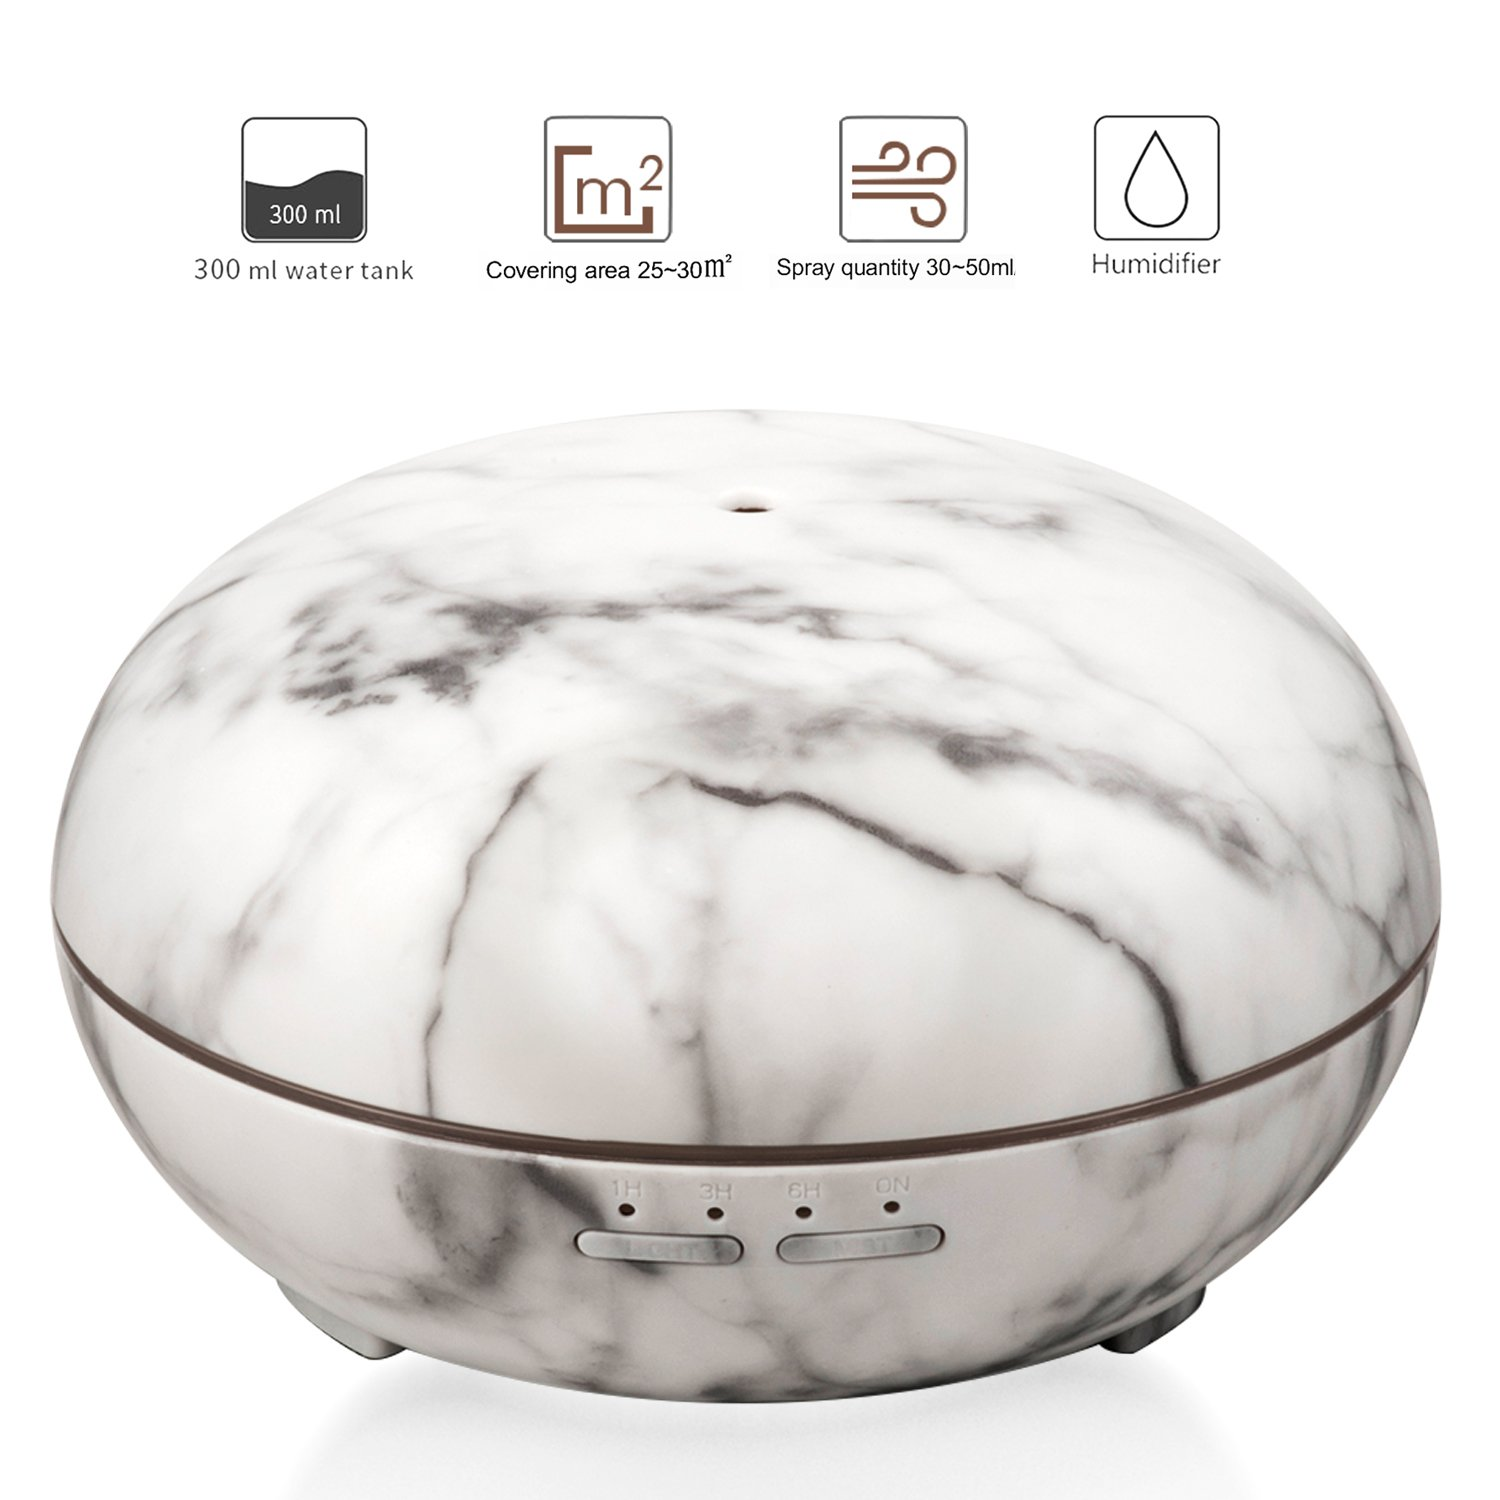 Innens Aroma Essential Oil Diffuser (300ml), Ultrasonic Air Purifier Cool Mist Humidifier with 7 Colorful Changing and Waterless Auto Shut-Off Made for Home/Bedroom/Office (Imitation White Marble) by Innens